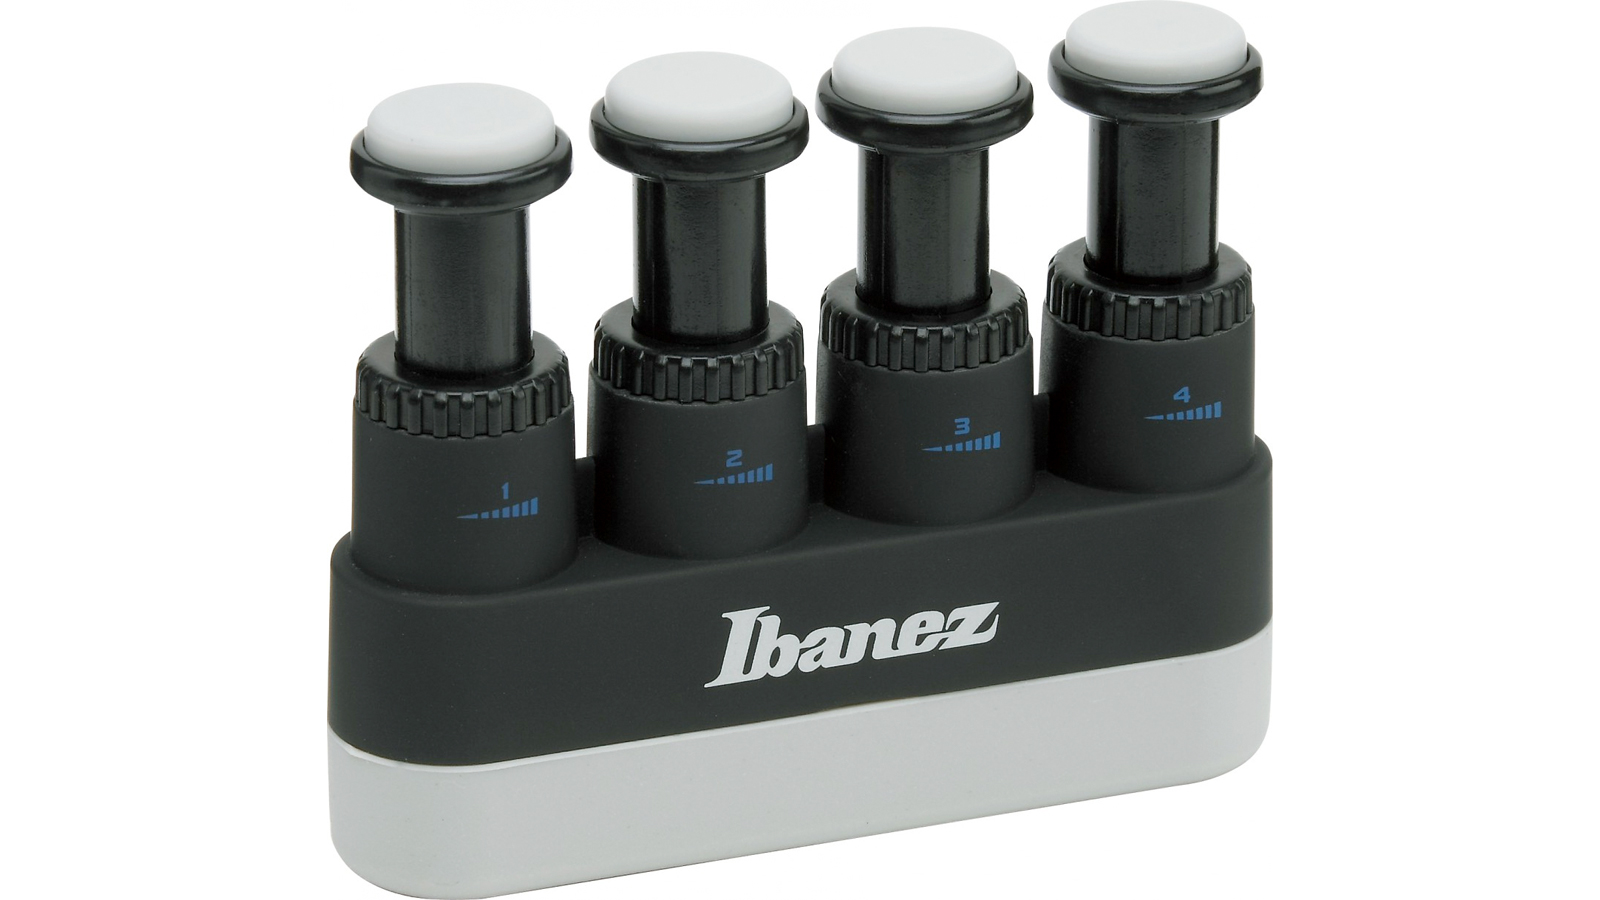 Ibanez IFT10 Fingertrainer